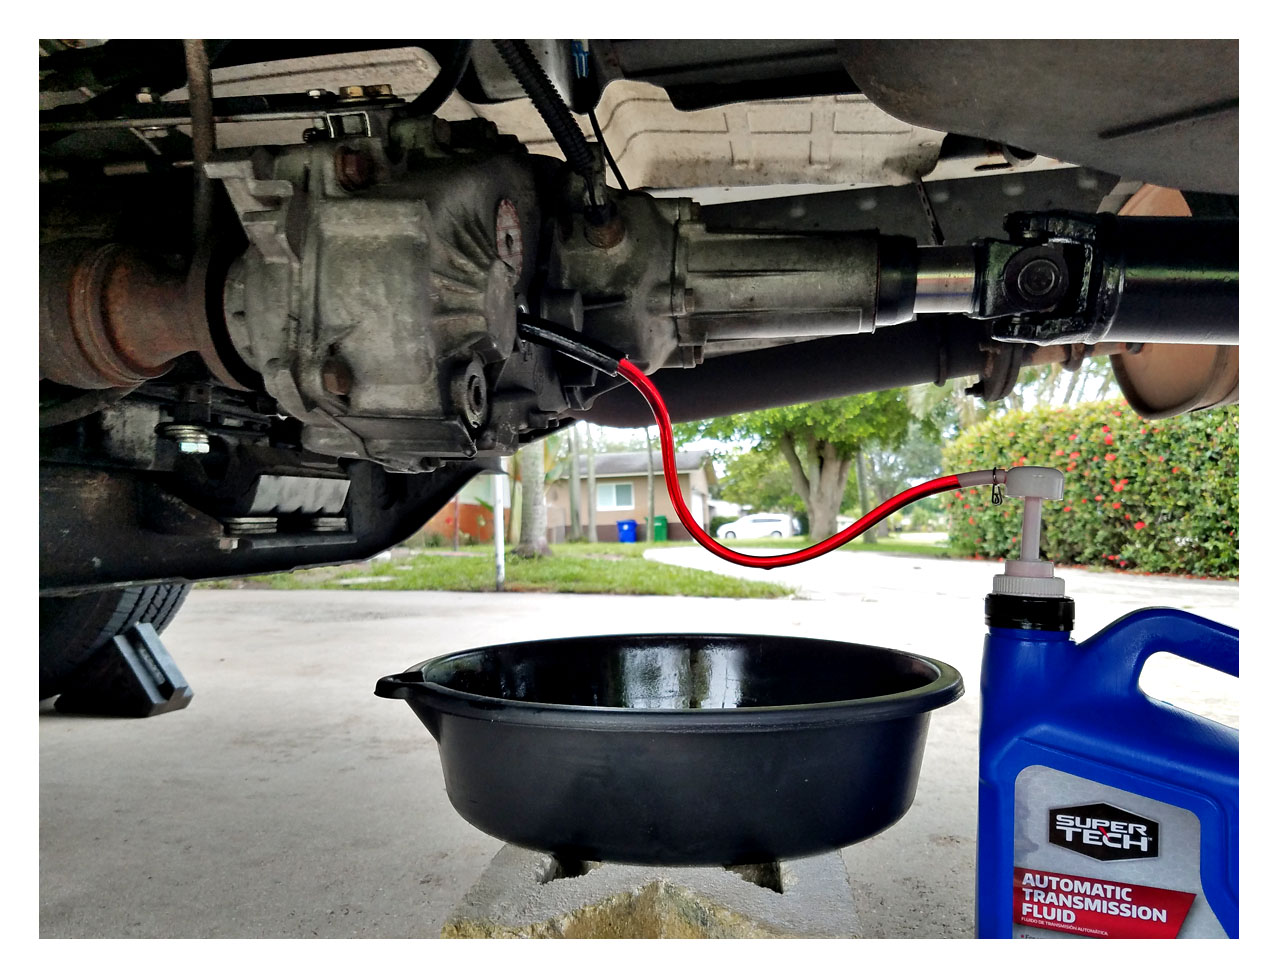 Np233 trans fluid or gear oil?